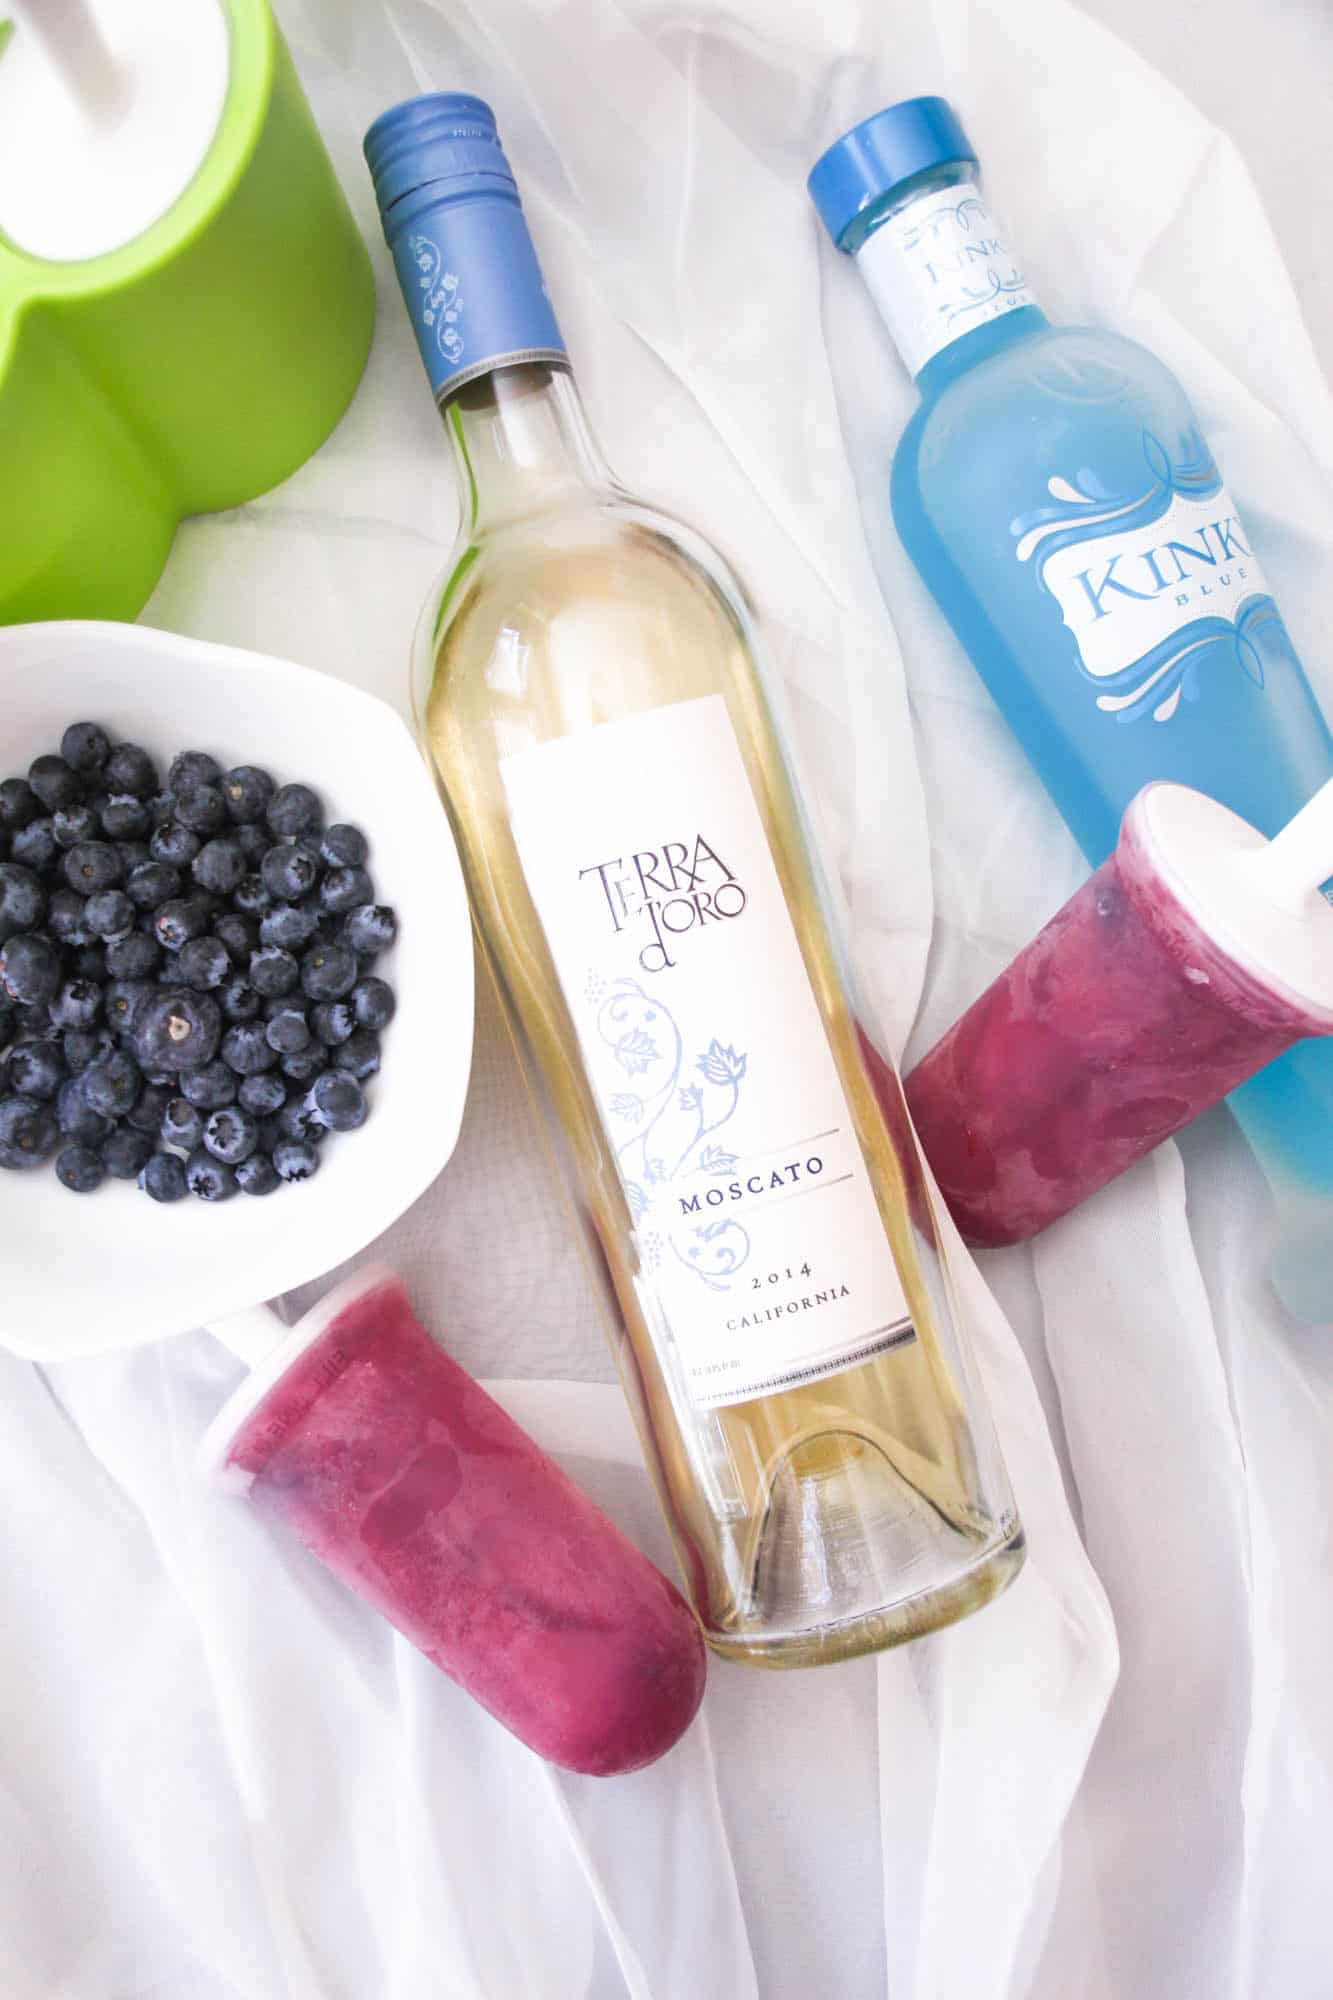 These delicious boozy popsicles will help you cool down this summer! You're going to love the blueberry combined with tasty Moscato wine. So refreshing!